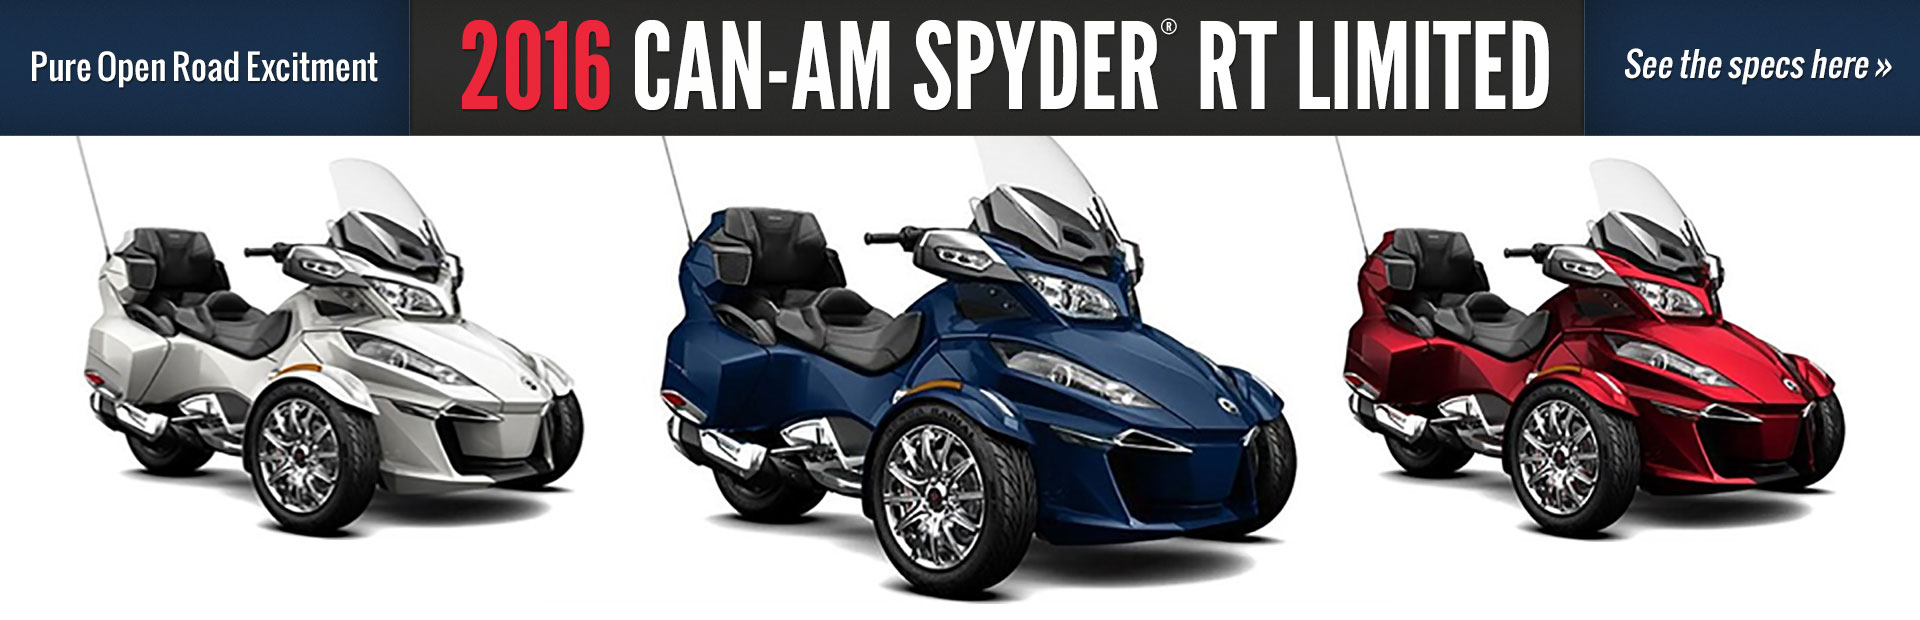 2016 Can-Am Spyder® RT Limited: Click here for details.